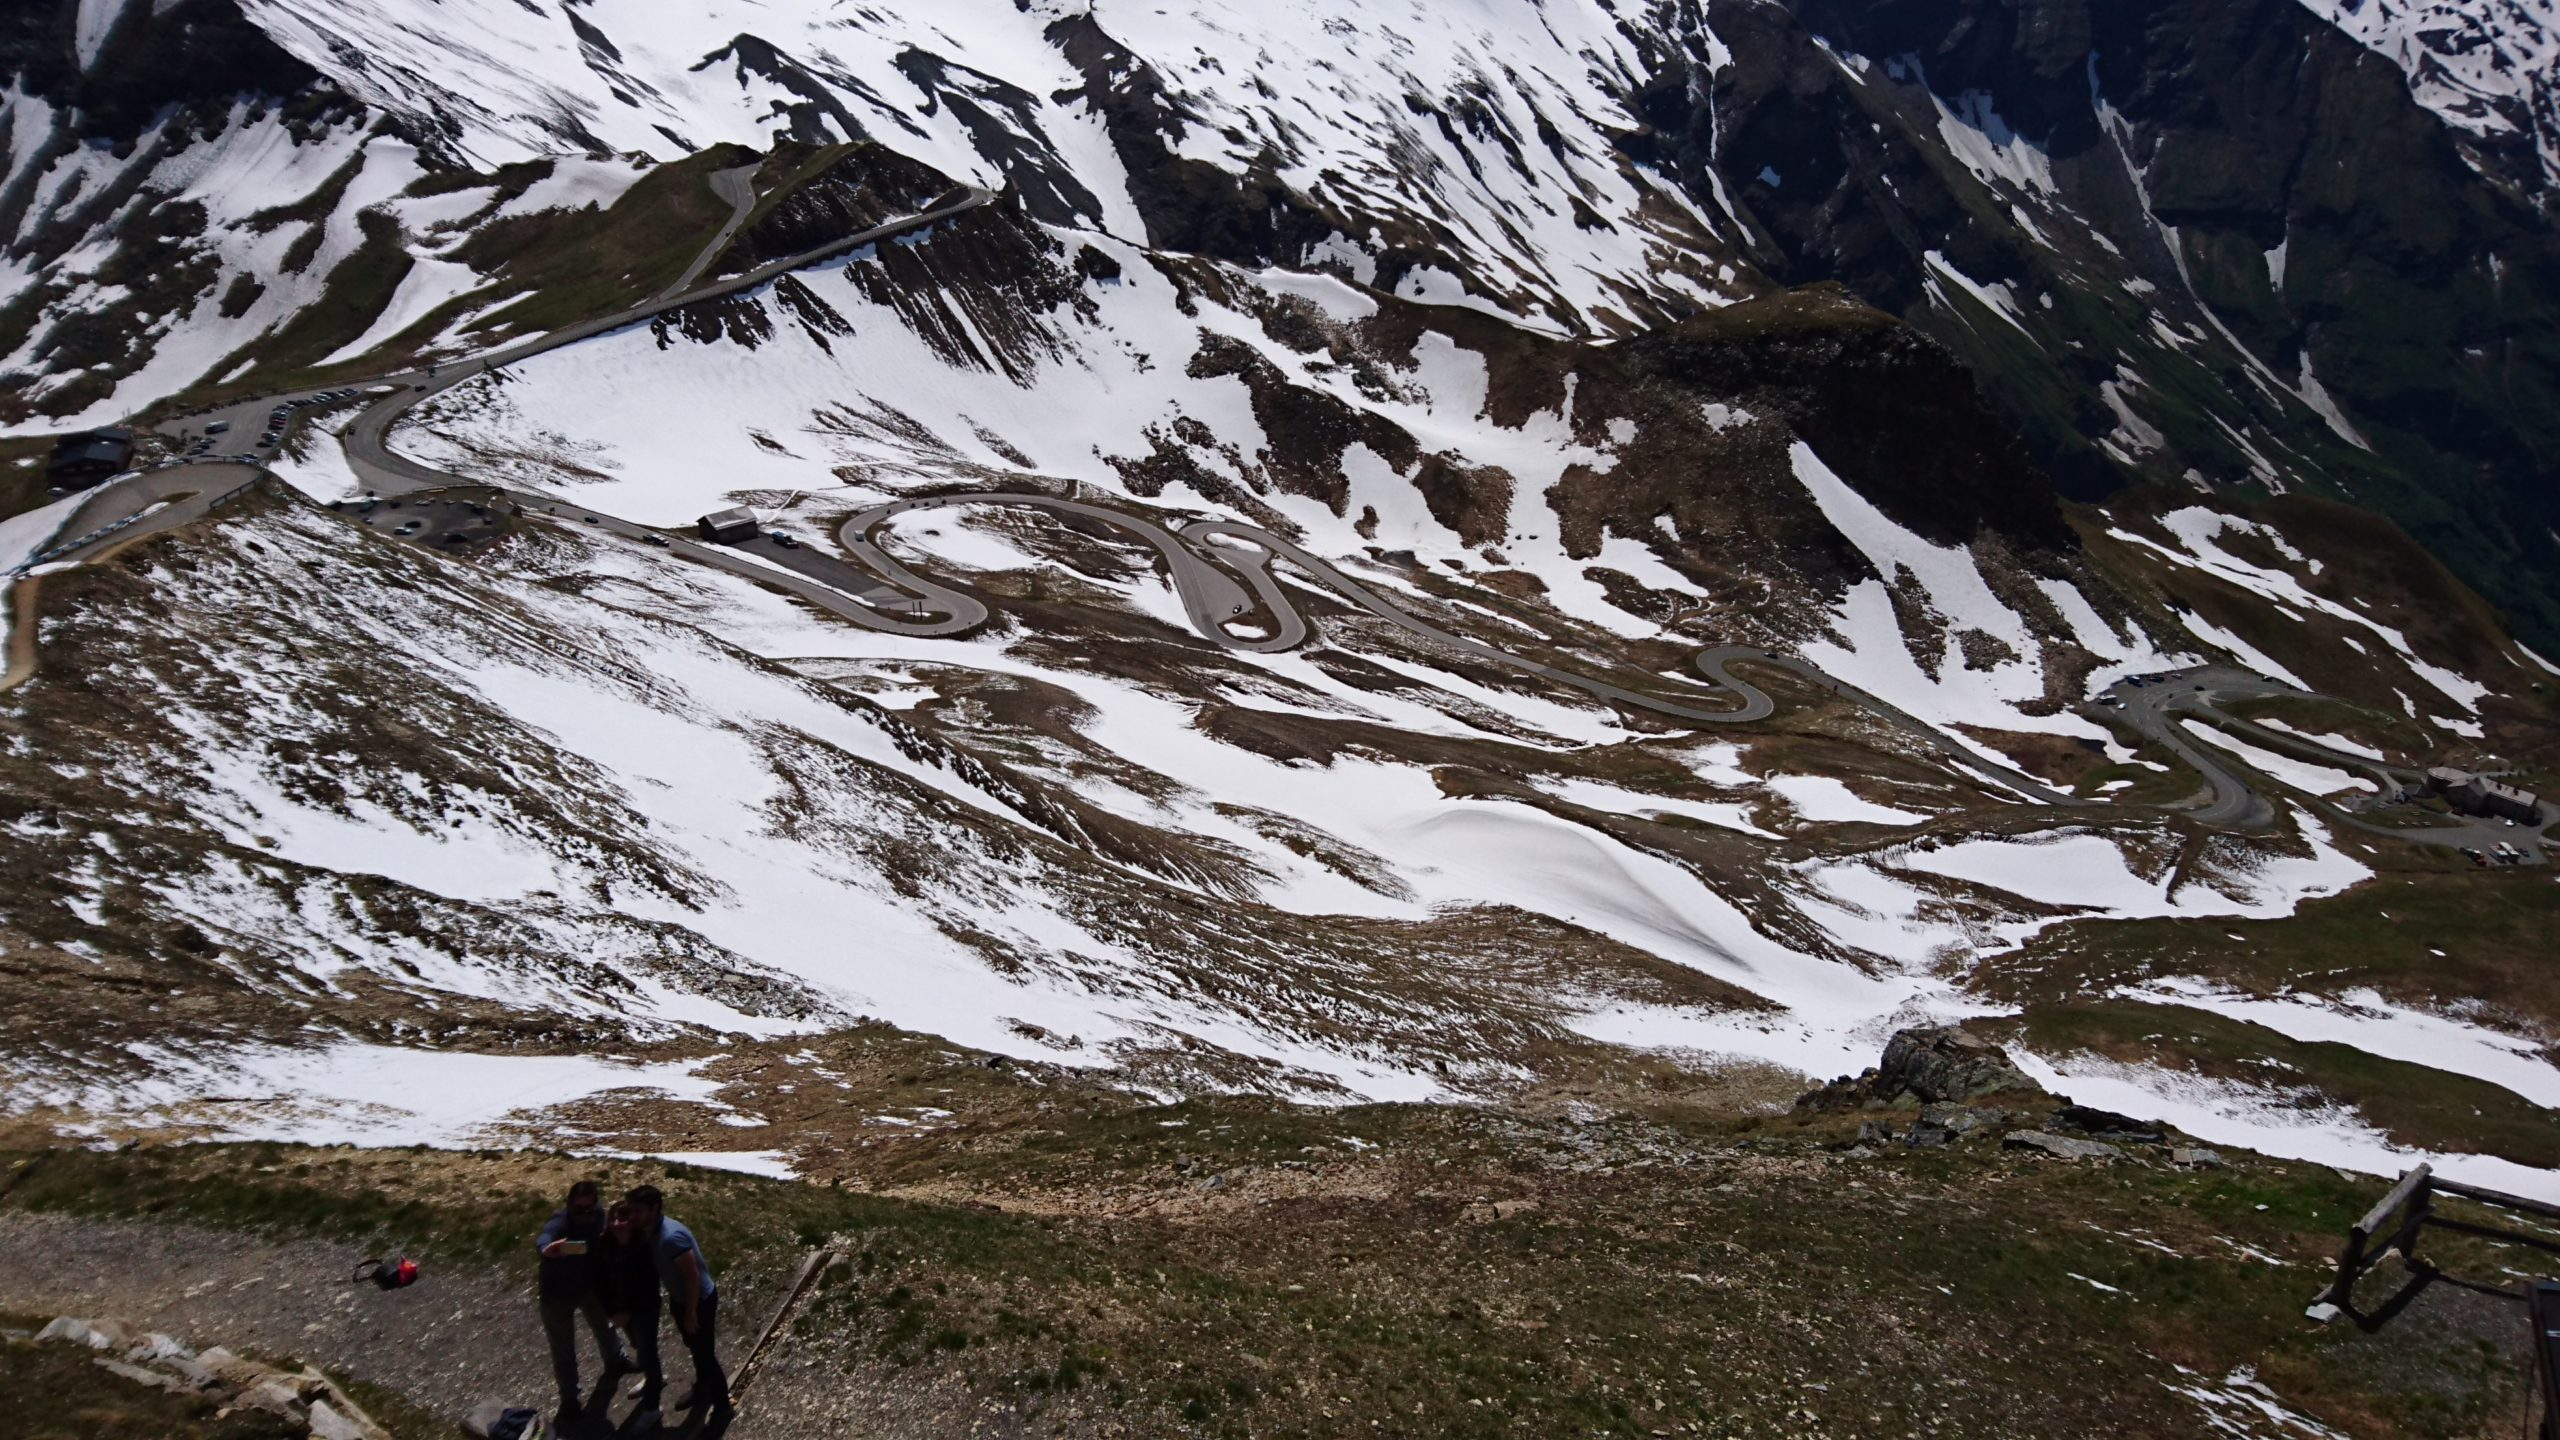 European motorcycle tour Austria Grossglockner Pass – 20 Countries in 20 Days (Day 3)